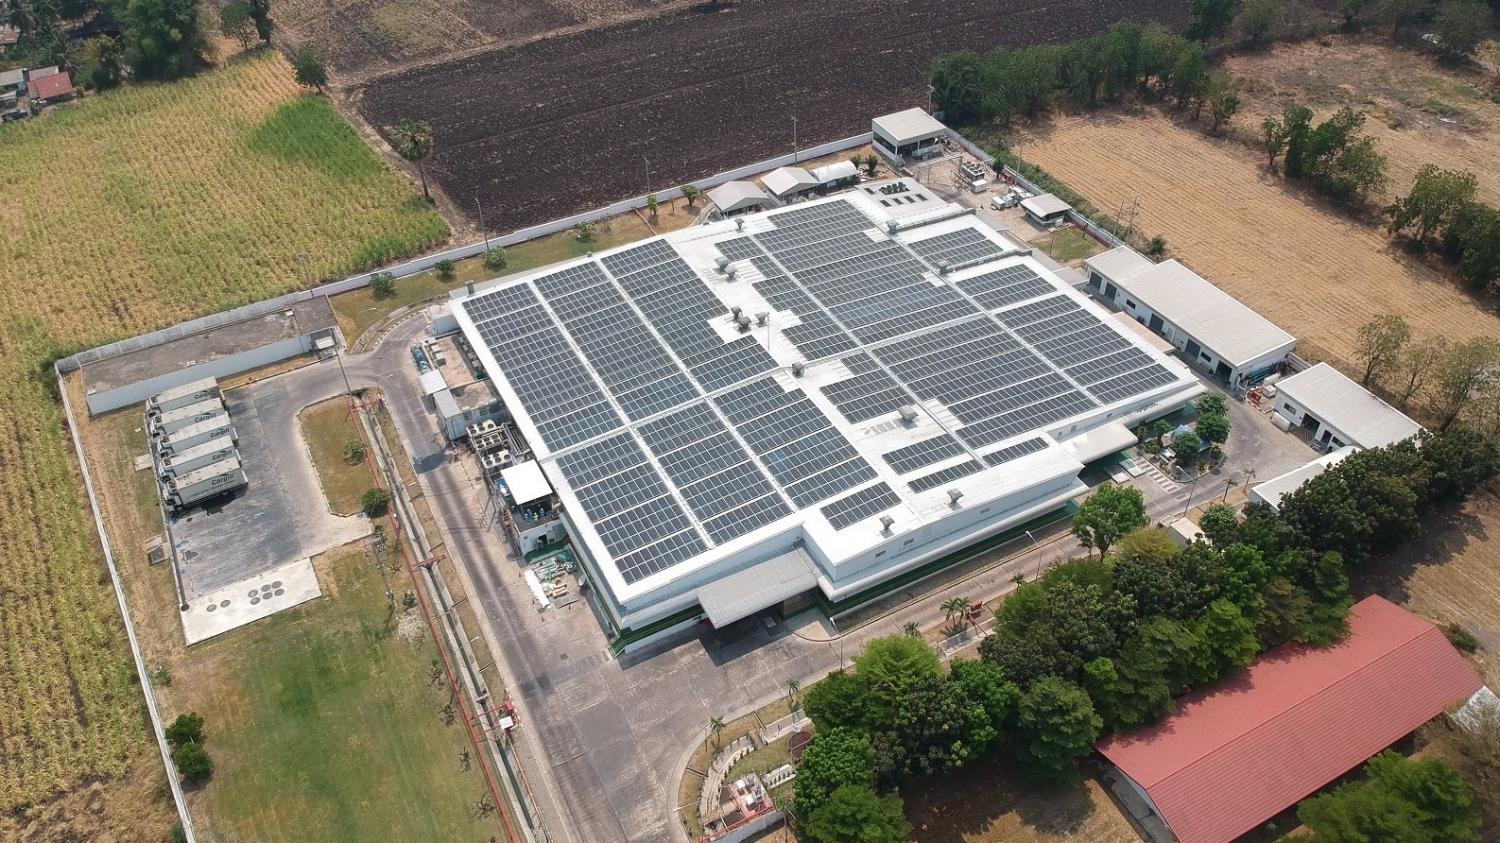 Cleantech Solar Cargill's Lopburi facility. Cargill's move to adopt solar energy in Thailand is in line with its global commitment to reduce Scope 1 and 2 greenhouse emissions by 10% by 2025.